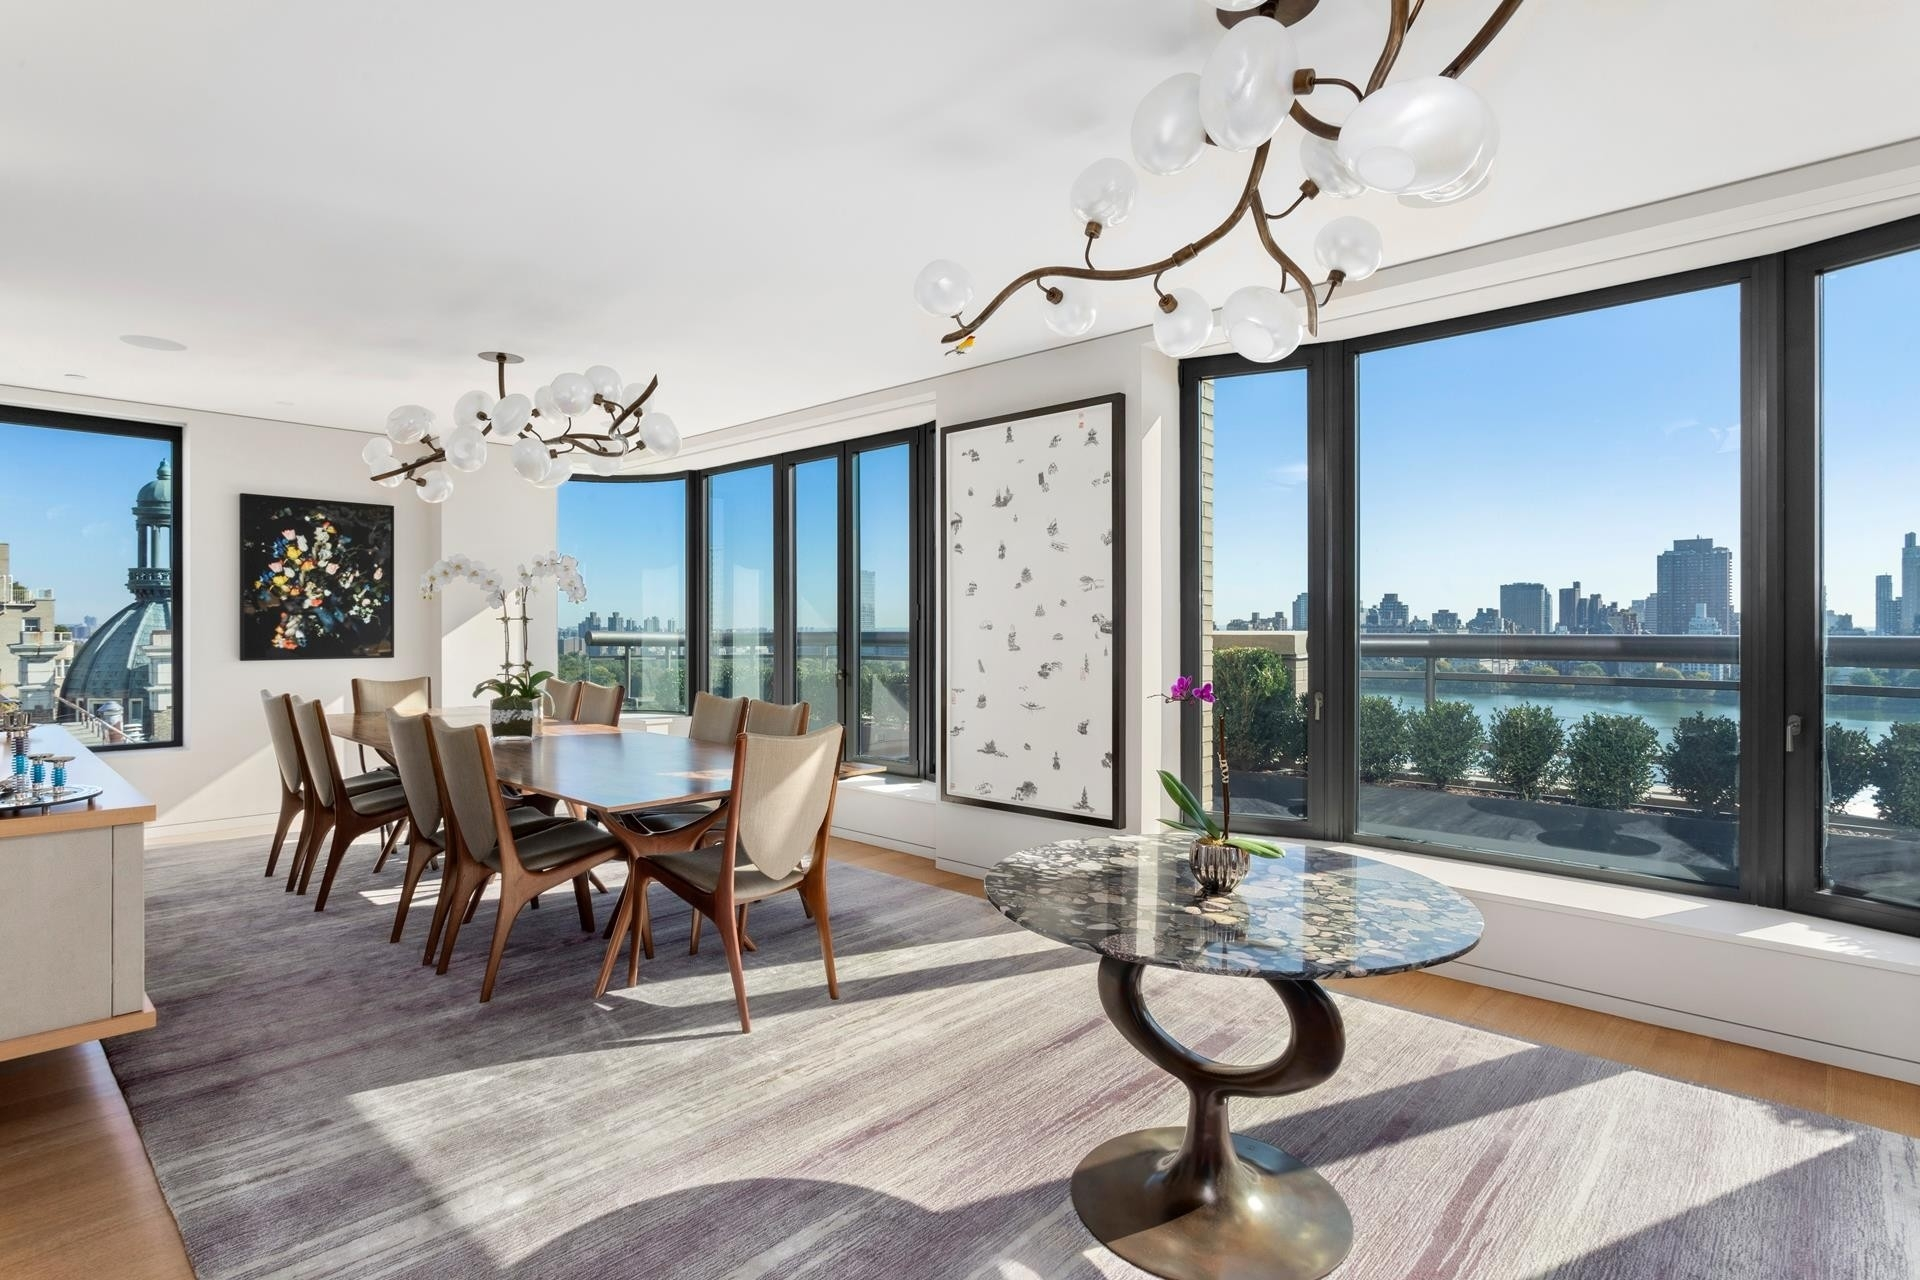 2. Condominiums for Sale at 279 CENTRAL PARK W, PHBA Upper West Side, New York, NY 10024